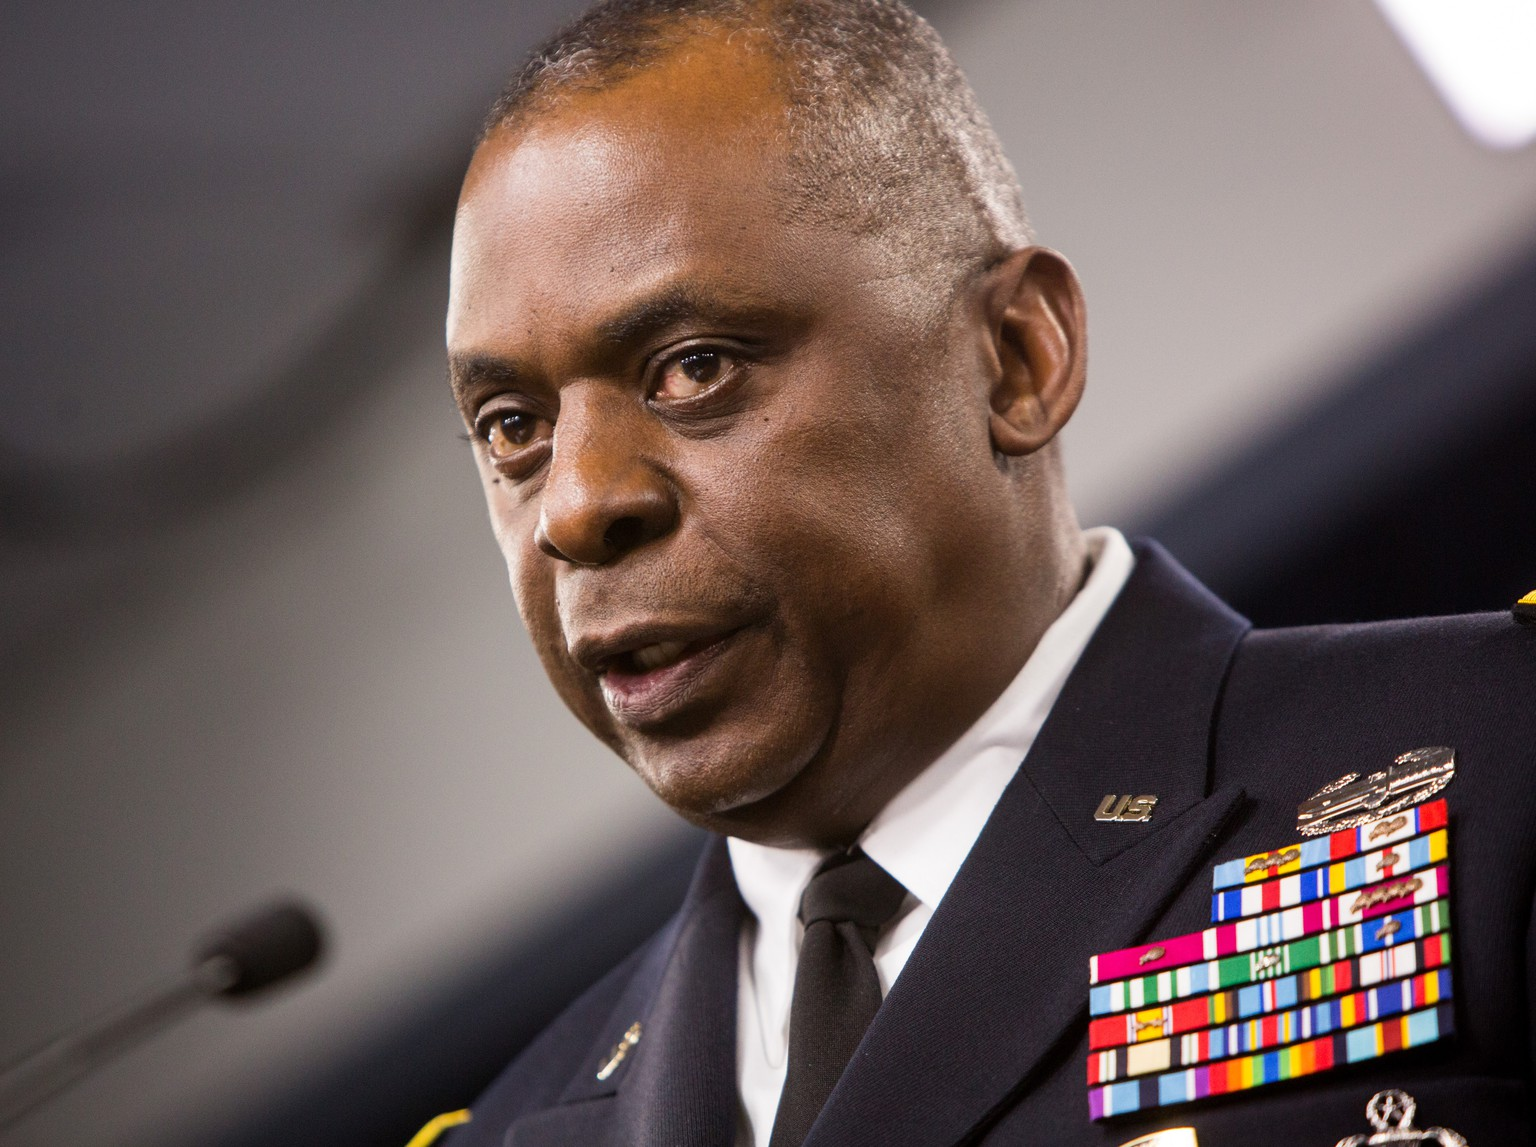 WASHINGTON, DC - OCTOBER 17:  Commander of U.S. Central Command, Gen. Lloyd Austin II, holds a media briefing on Operation Inherent Resolve, the international military effort against ISIS on October 17, 2014 at the Pentagon in Washington, D.C.  The general expressed concern that the Syrian city of Kobani could fall to ISIS militants.  (Photo by Allison Shelley/Getty Images)